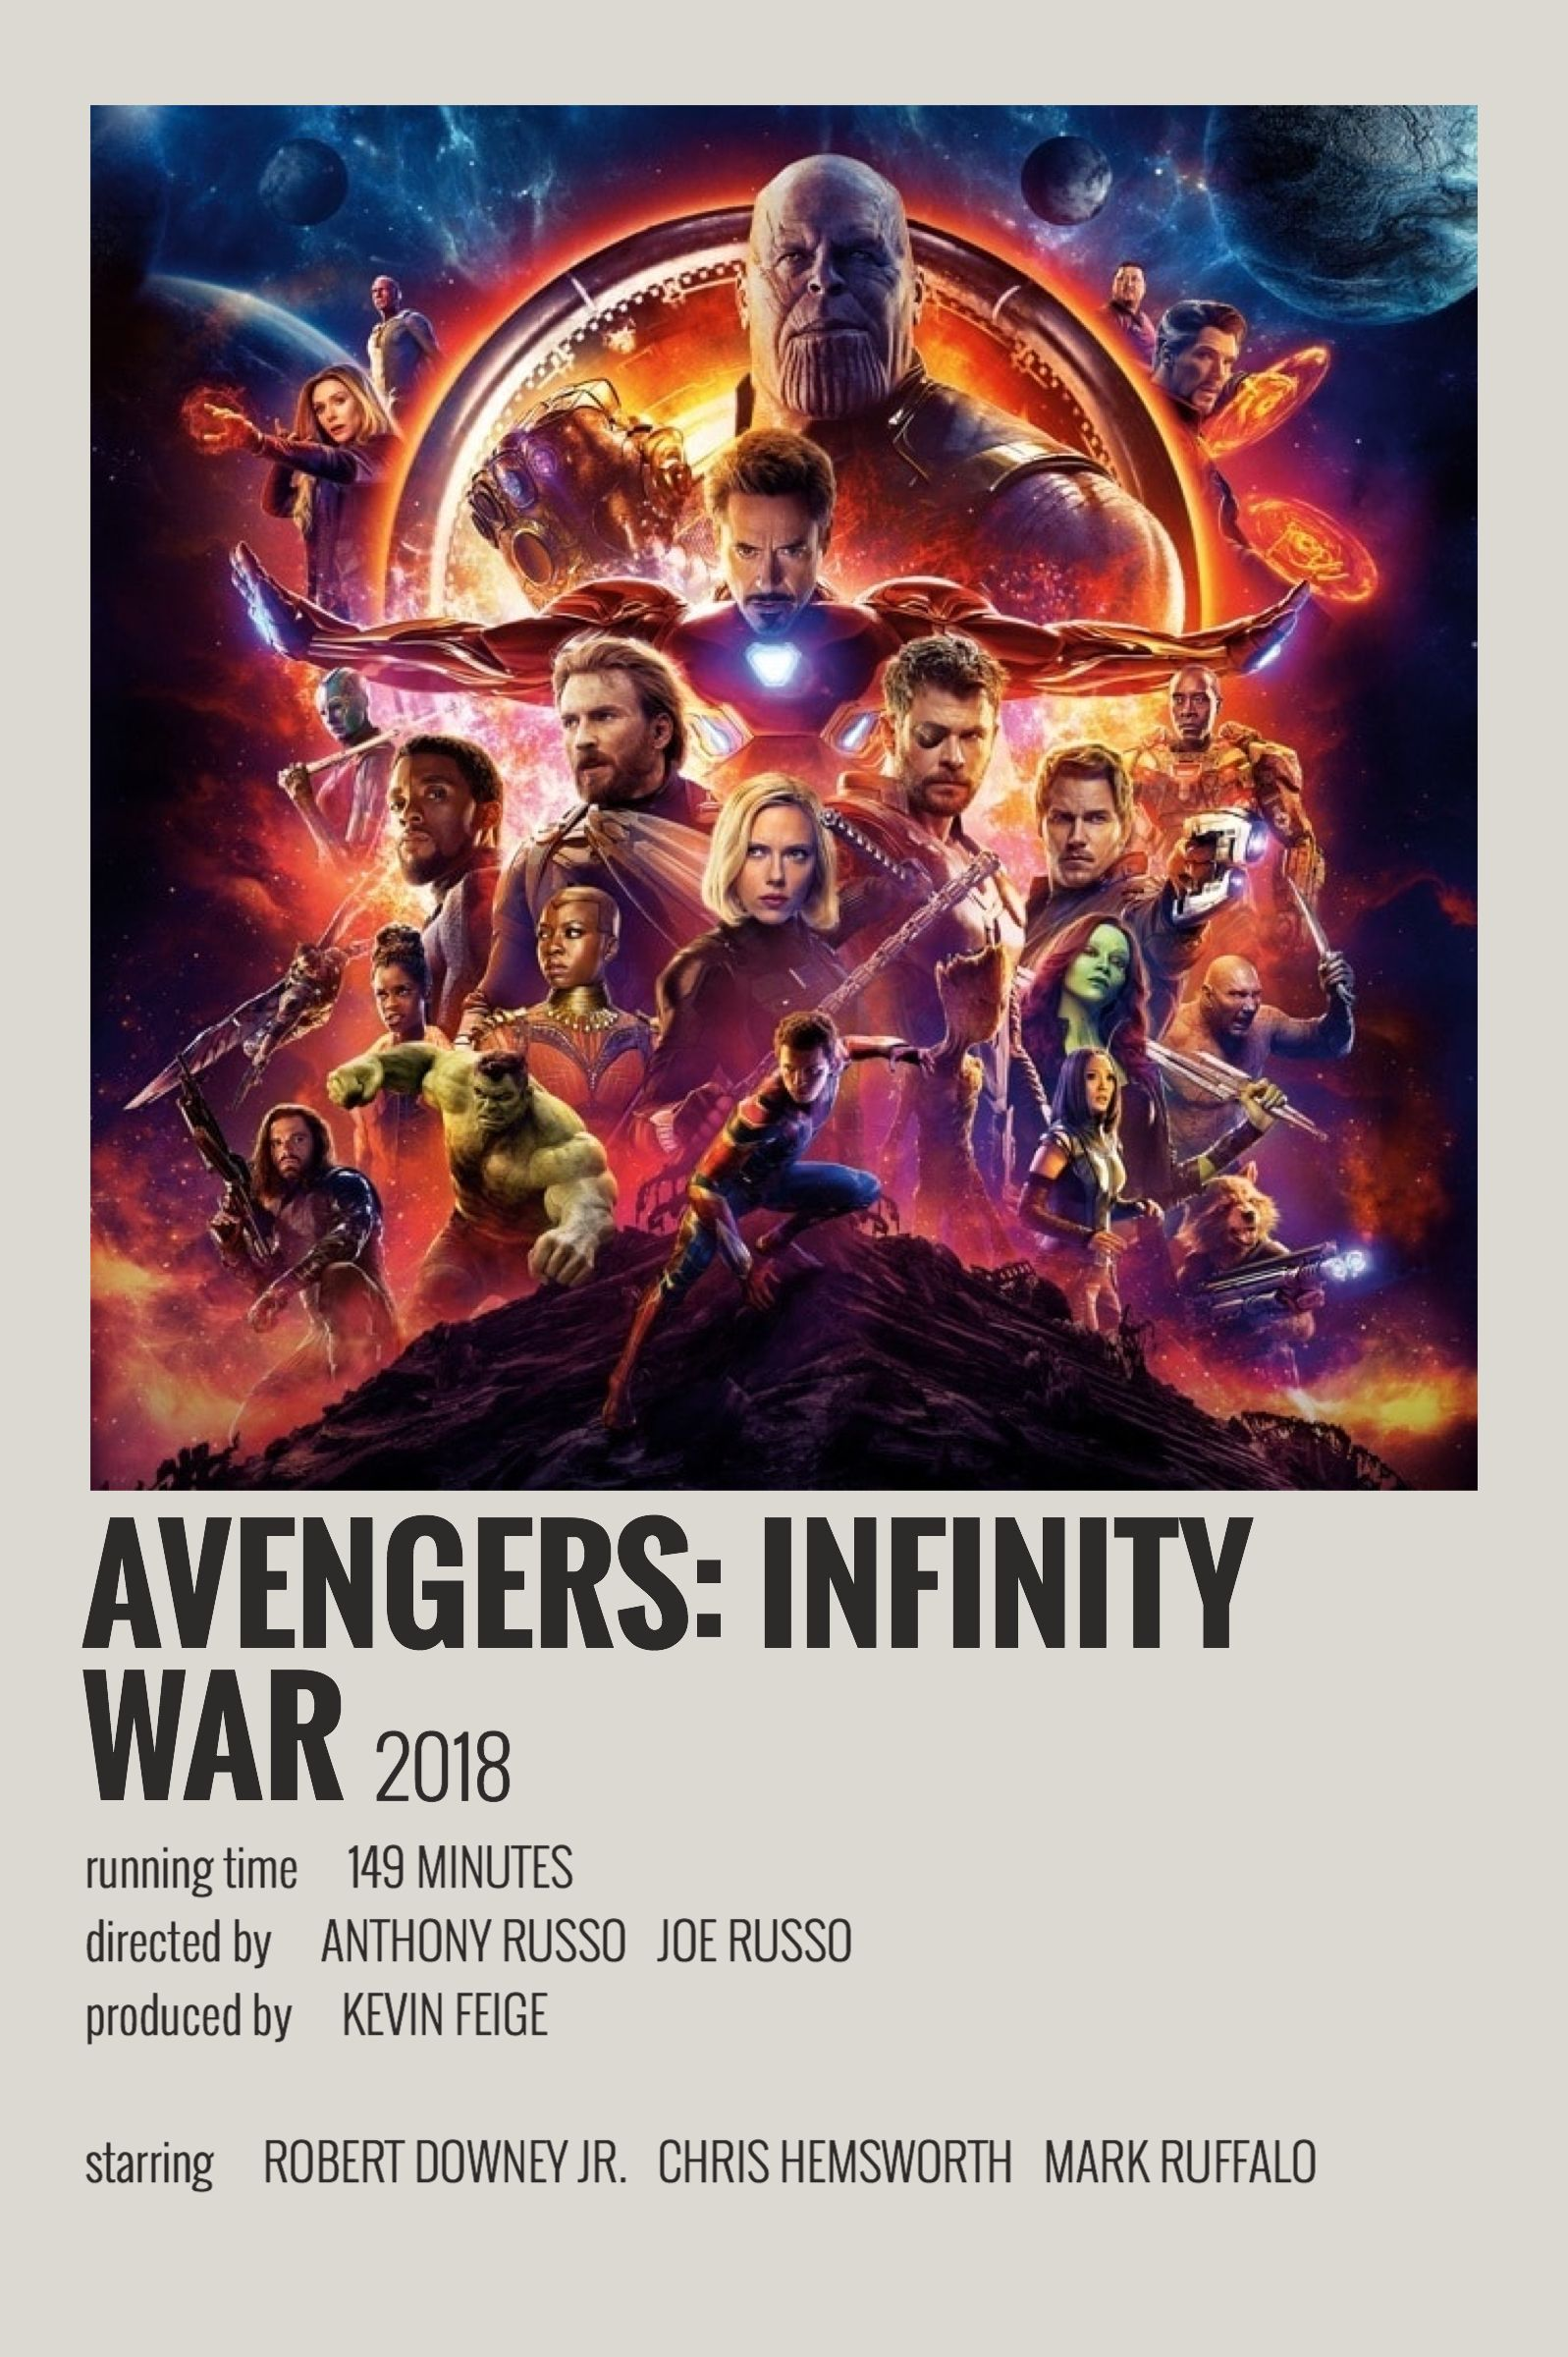 Avengers Infinity War By Maja Avengers Poster Avengers Movie Posters Film Posters Minimalist